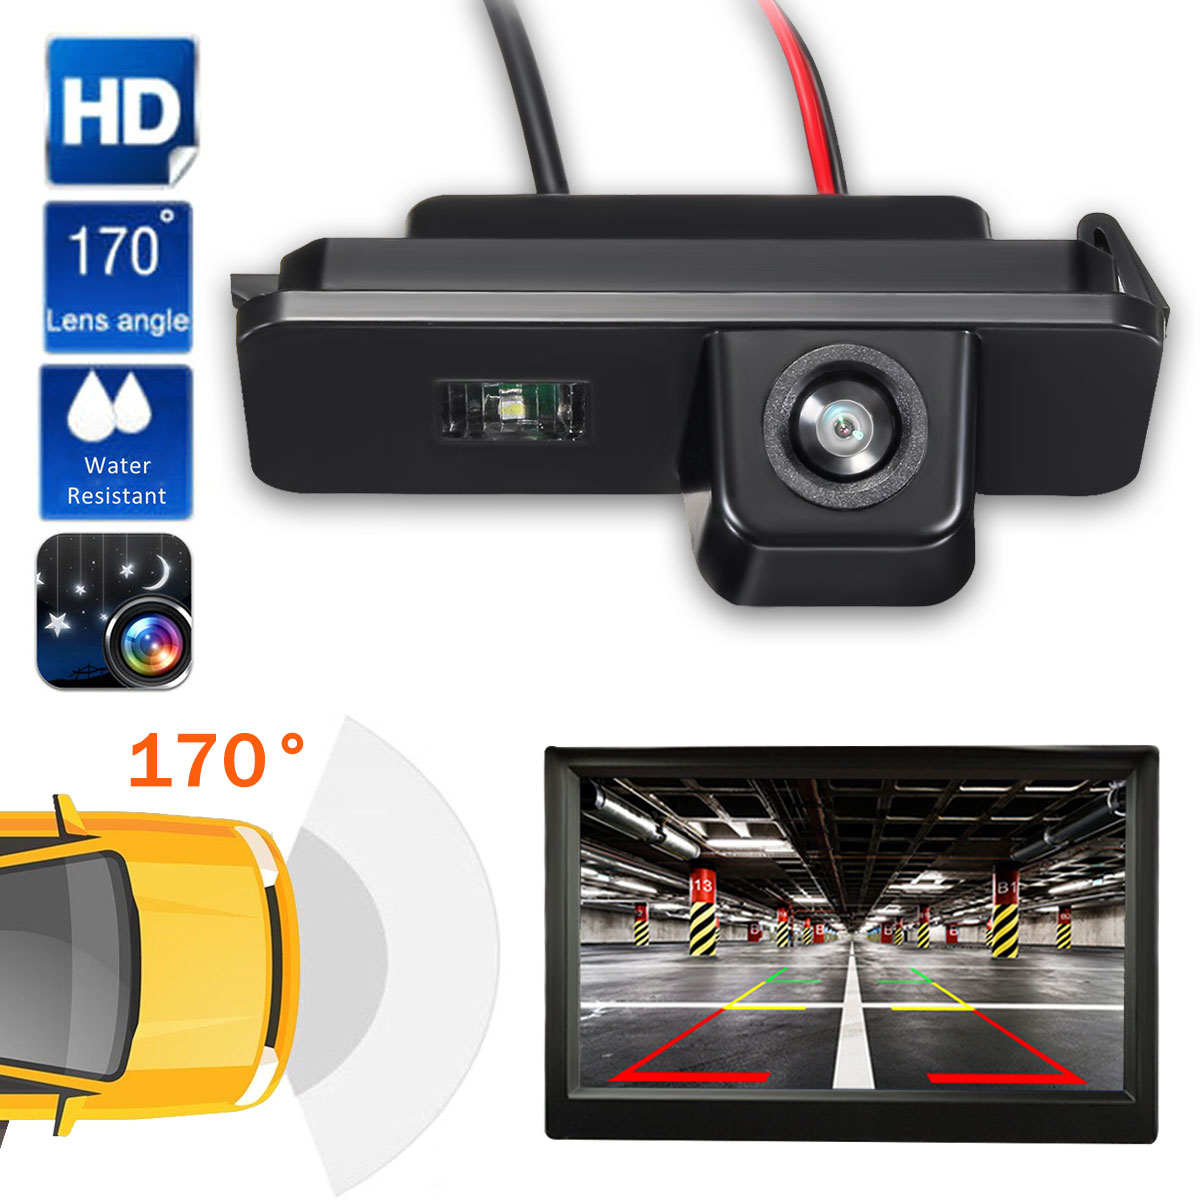 Universal Car Rear View Reverse Camera For VW For Polo 2C Bora Golf MK4 MK5 MK6 Beetle Leon Backup Rearview Parking